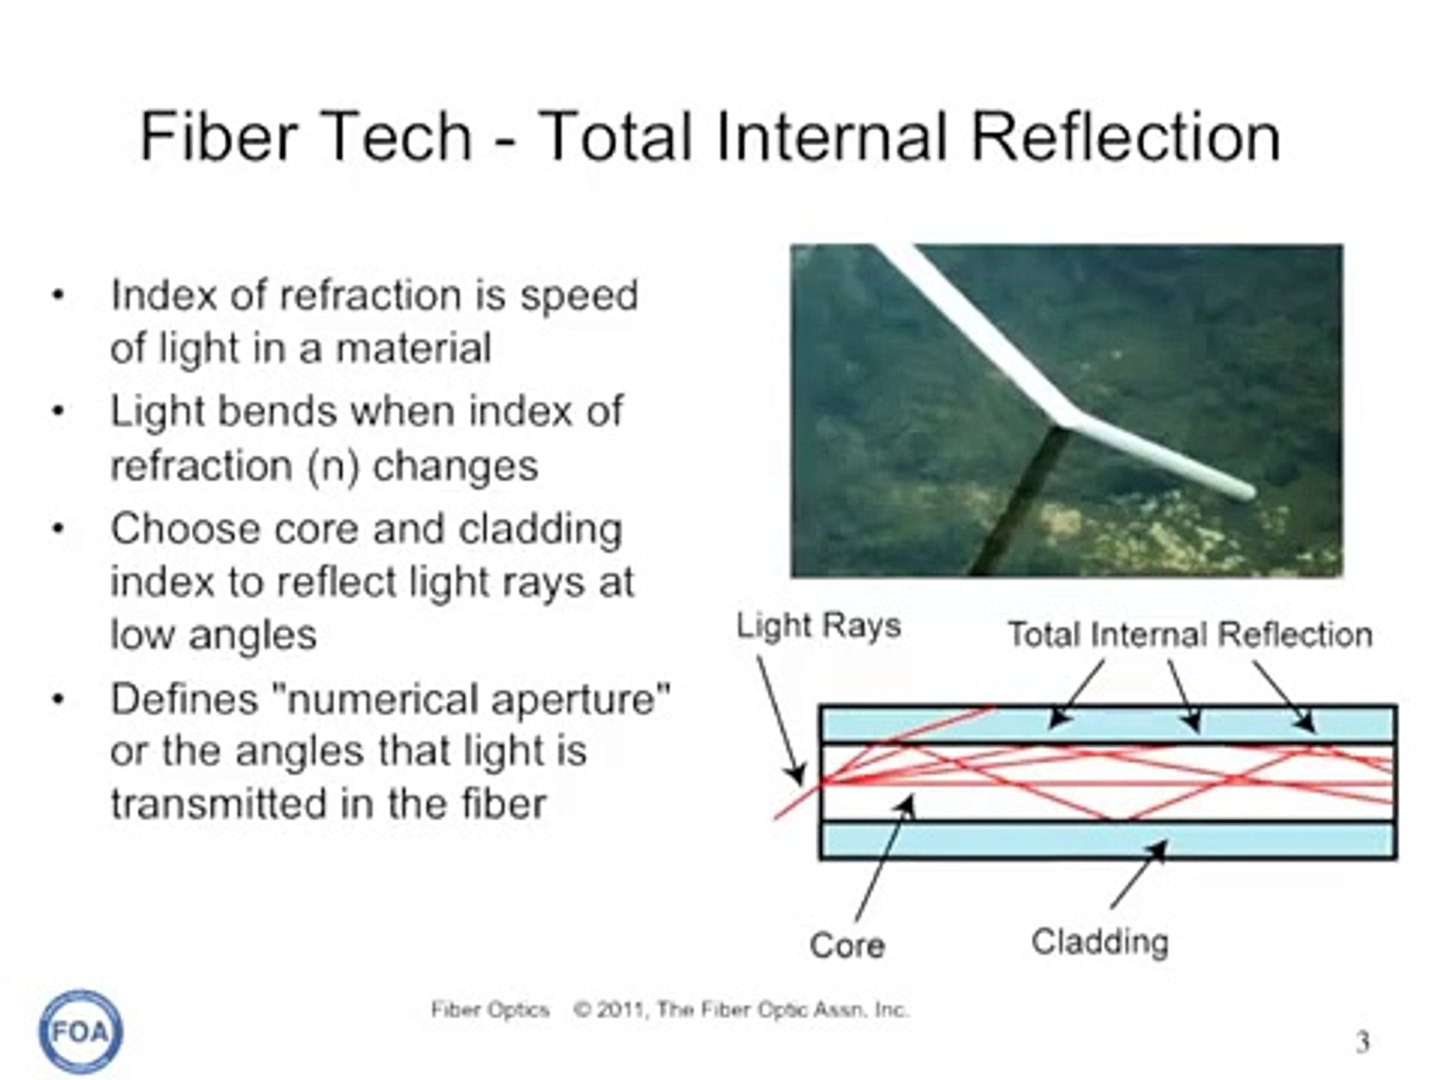 FOA Lecture 23 Total Internal Reflection in Optical Fiber